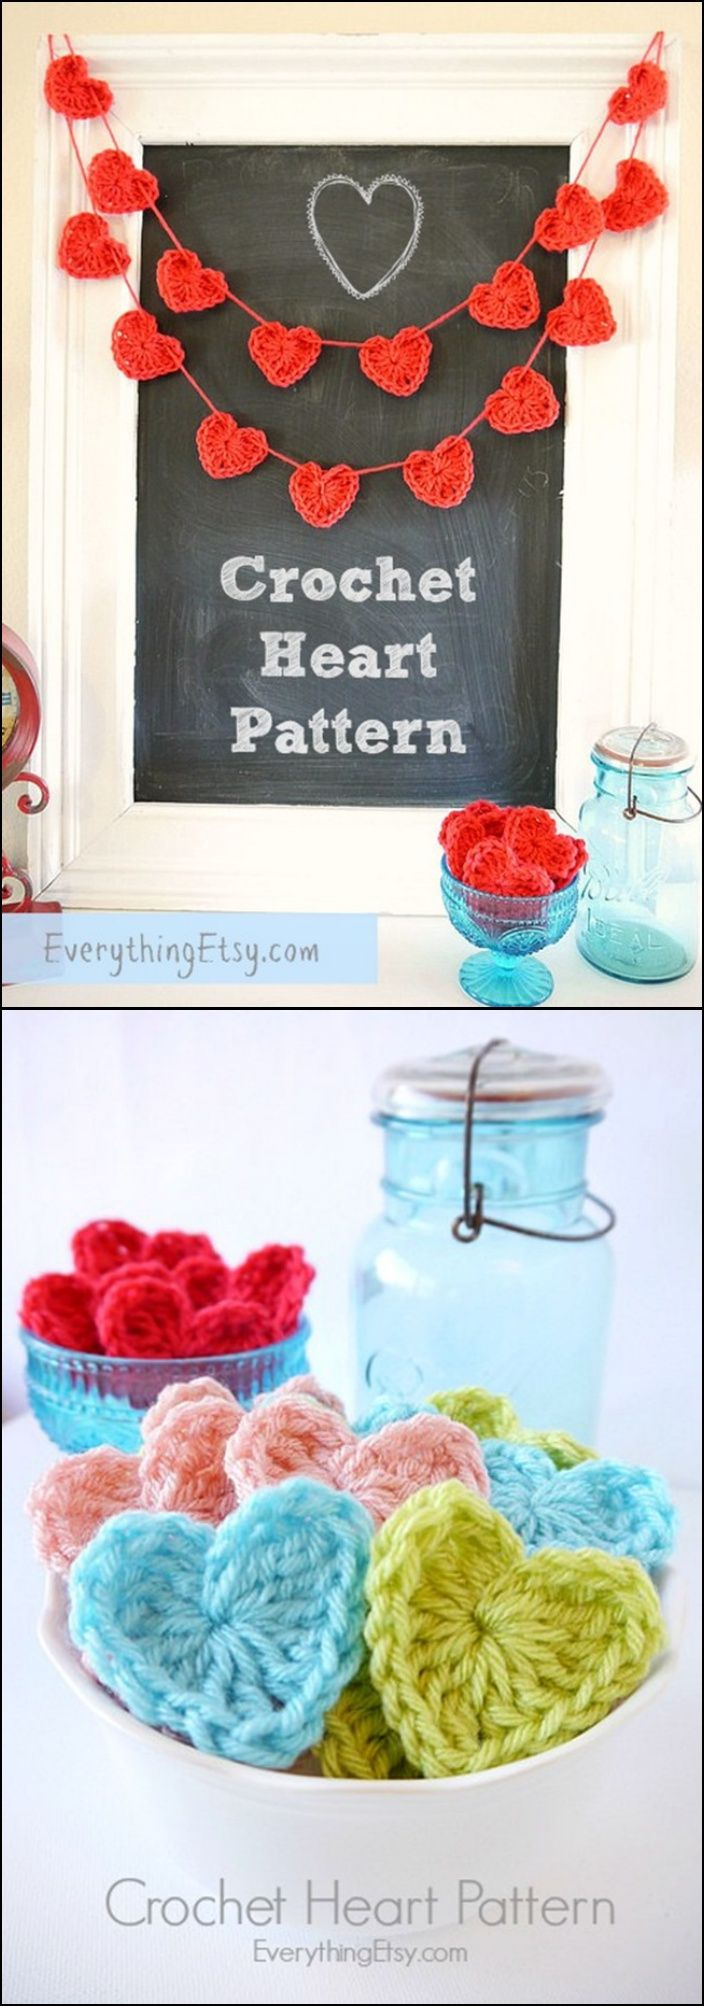 20 Amazing Free Crochet Patterns That Any Beginner Can Make---Free Crochet Heart Pattern